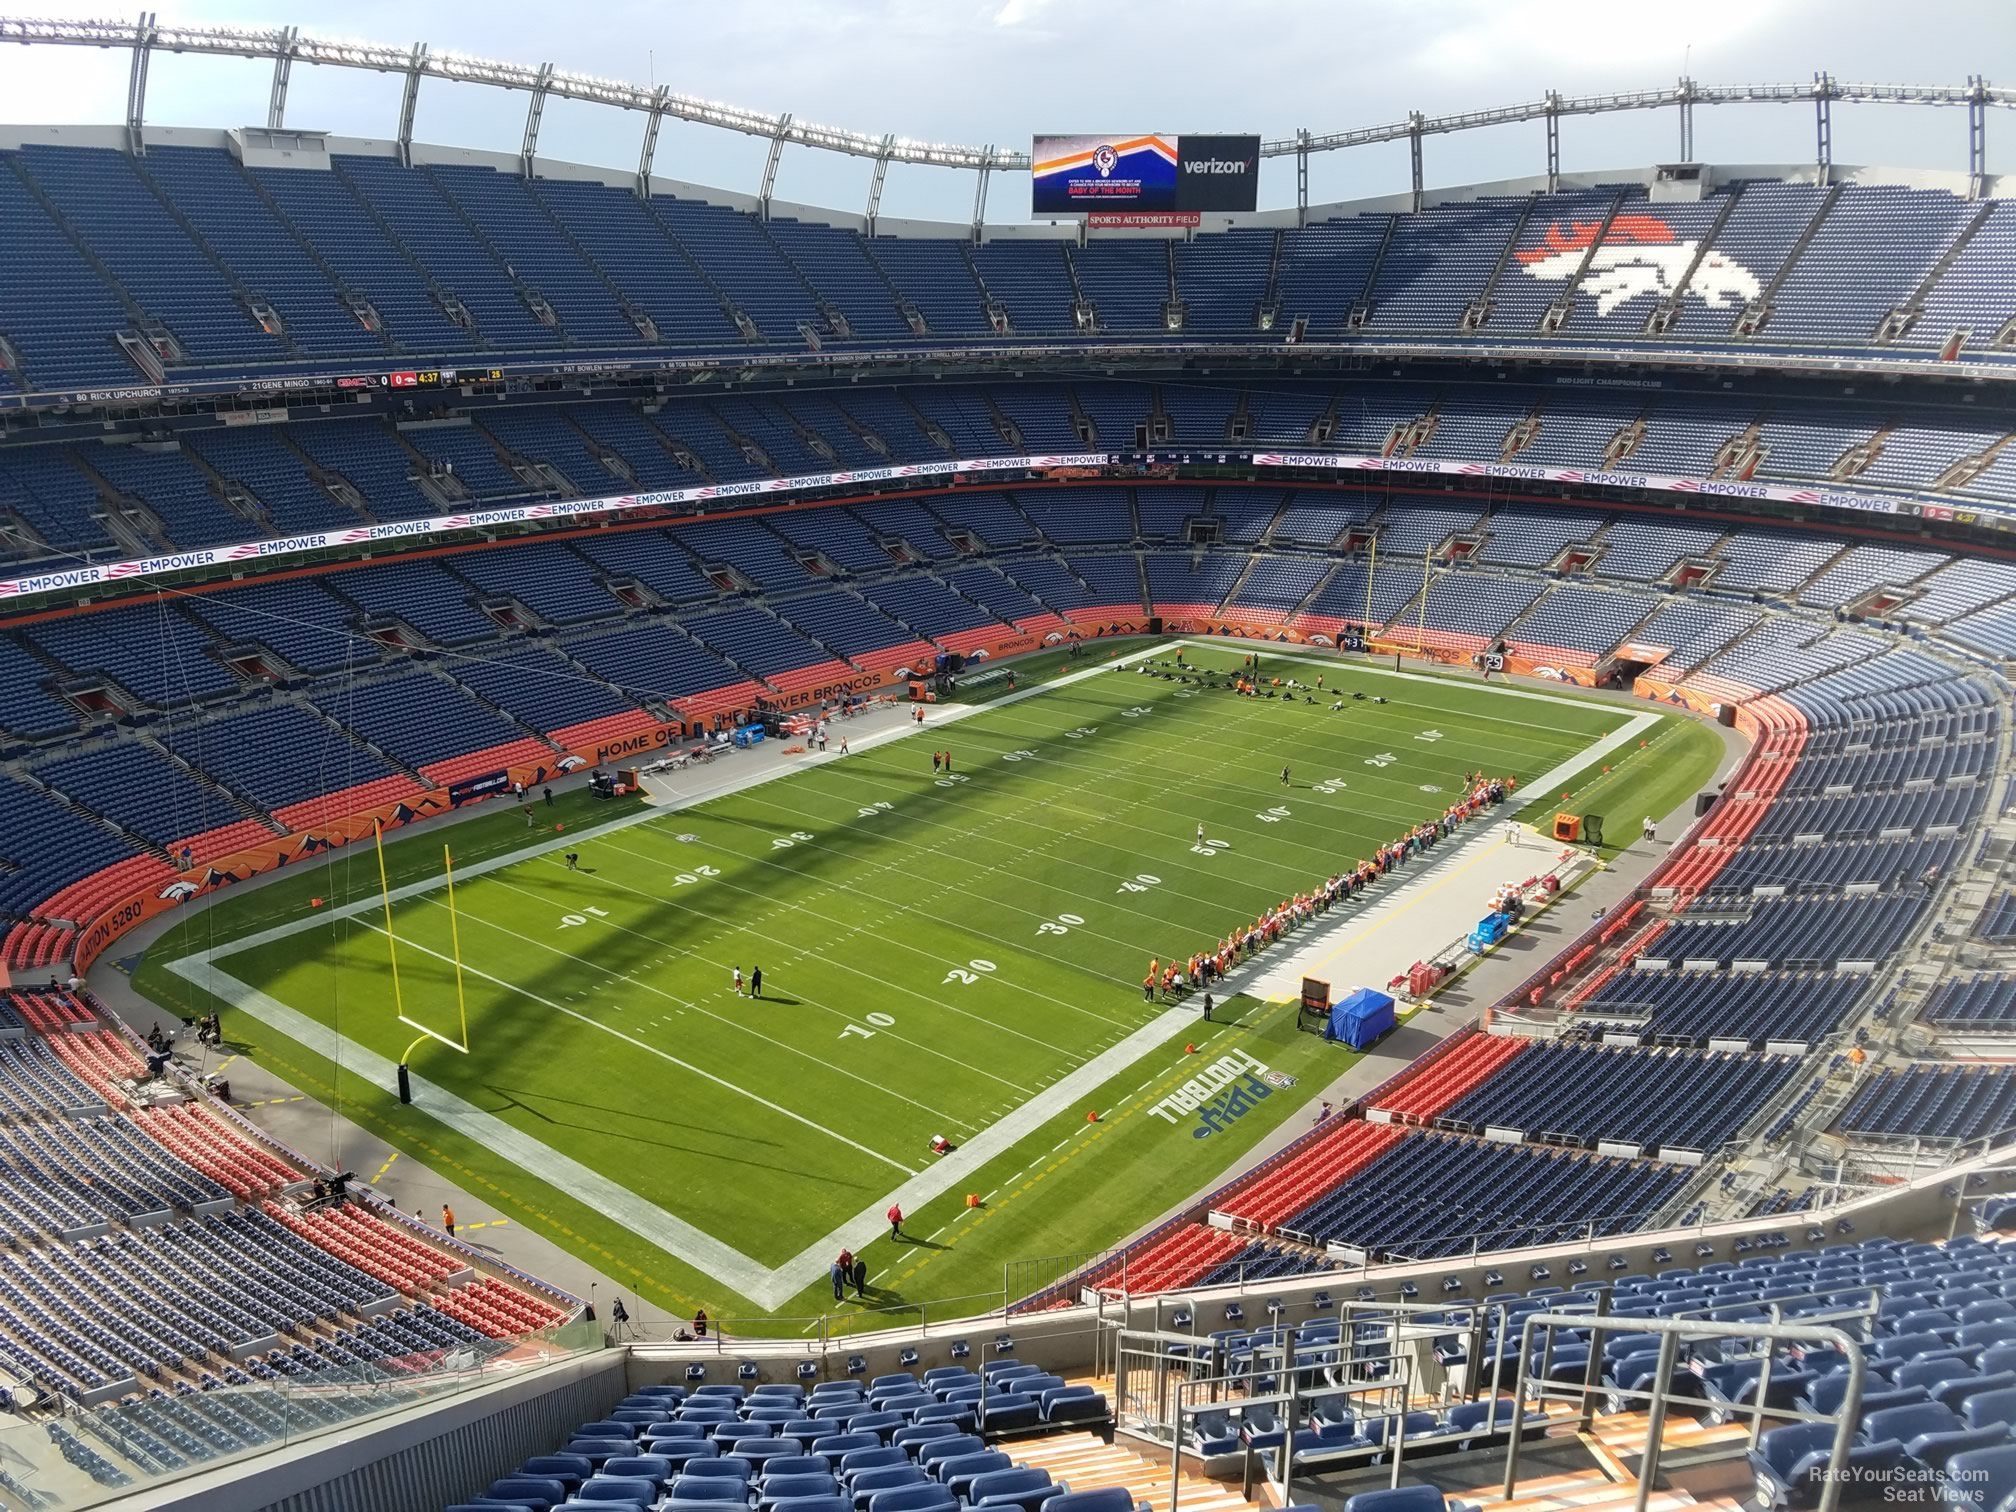 Section 542 seat view